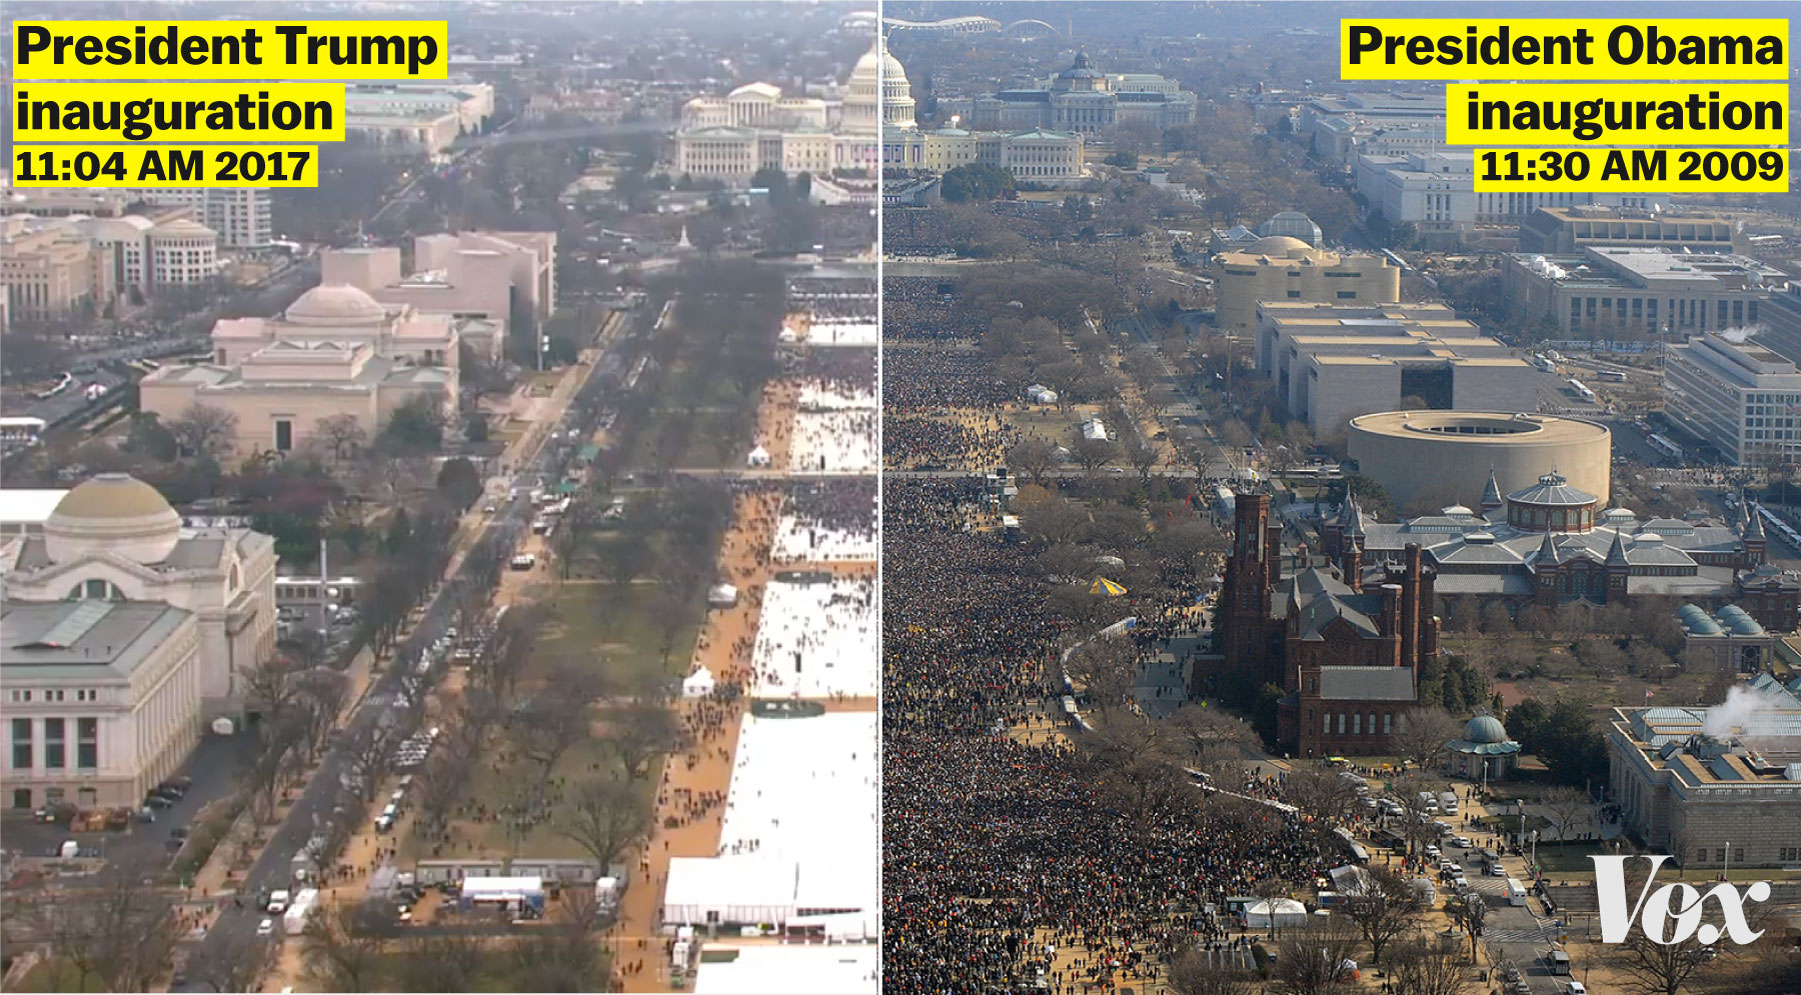 Photos: the crowd at Donald Trump's inauguration vs. Barack ...